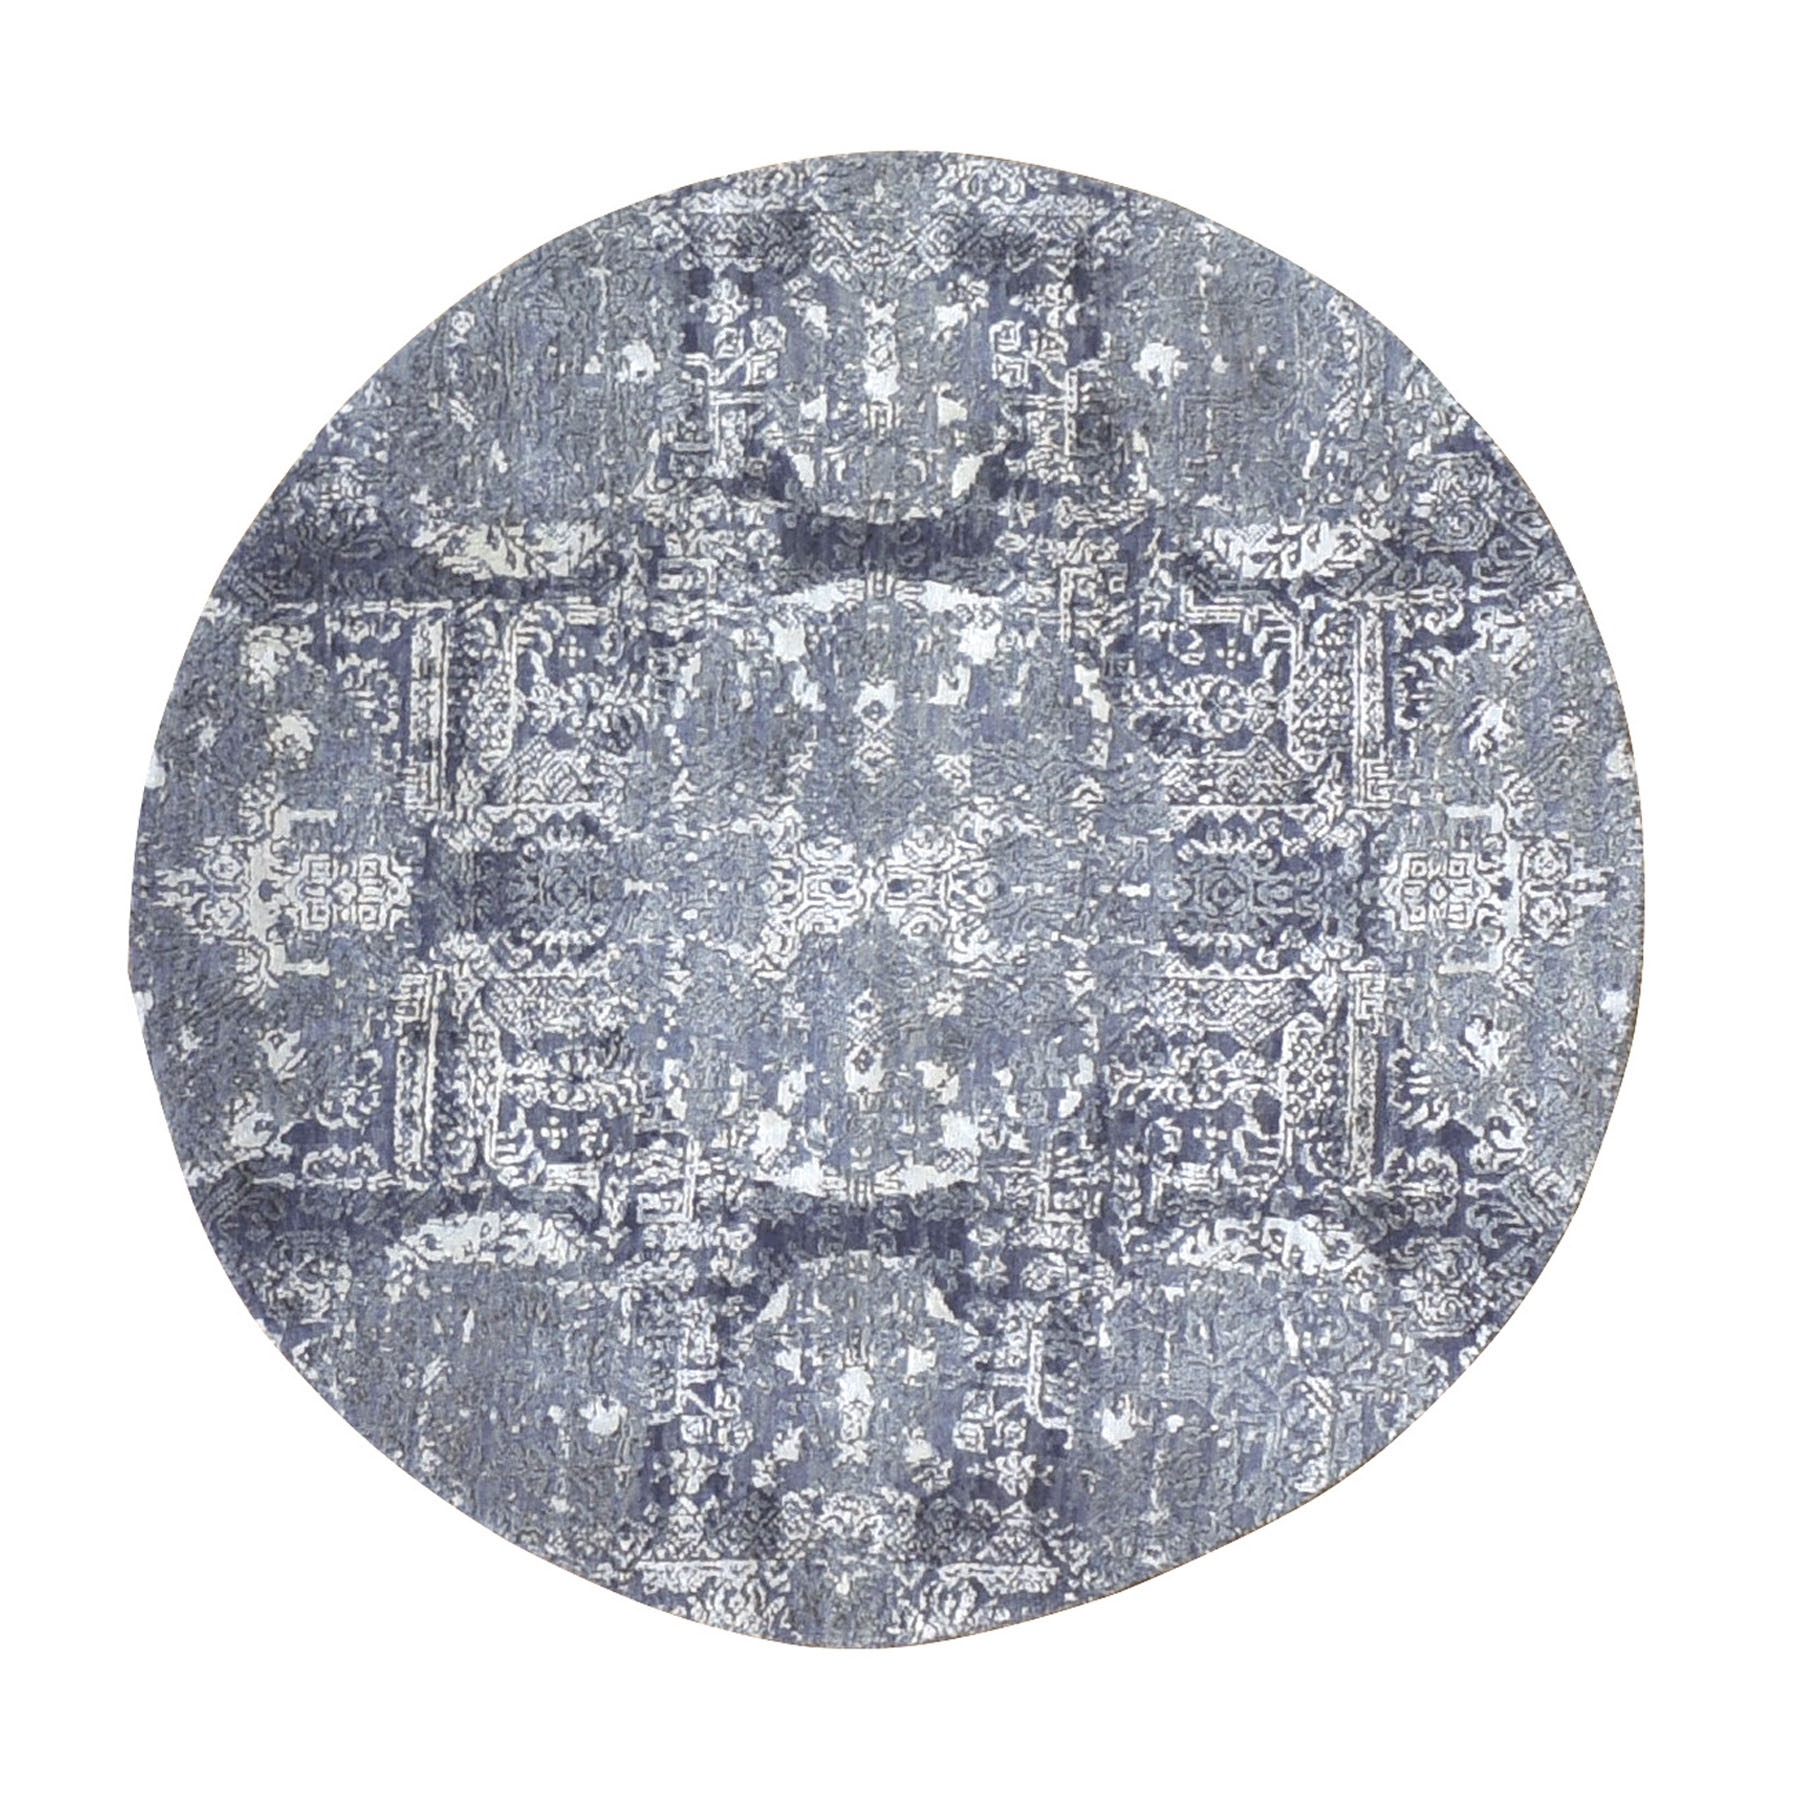 4'x4' Round Gray Wool And Pure Silk Jewellery Design Hand Woven Oriental Rug